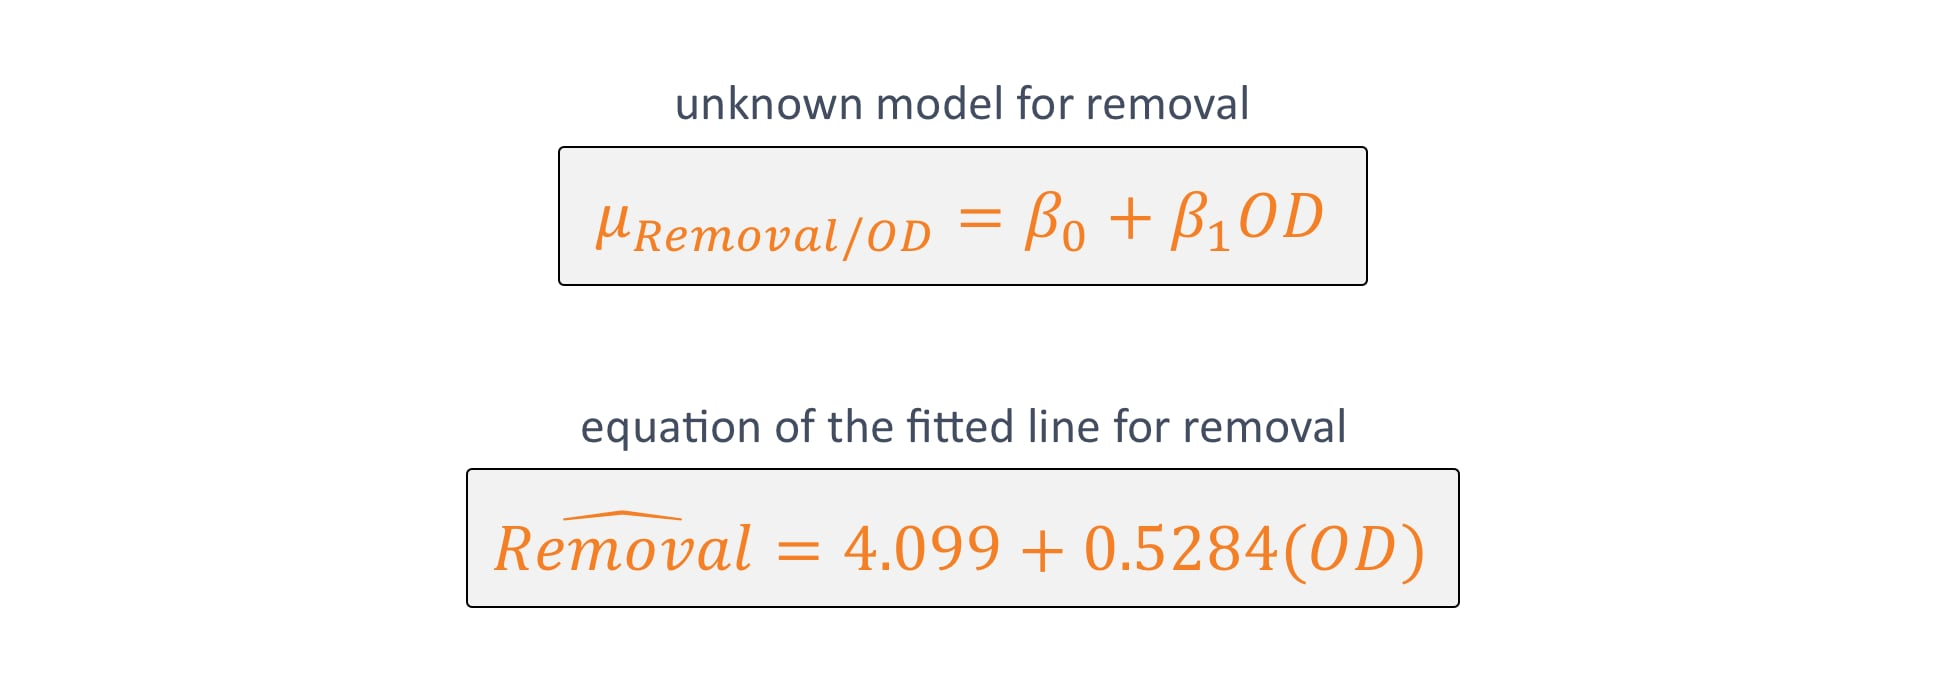 Model for Removal